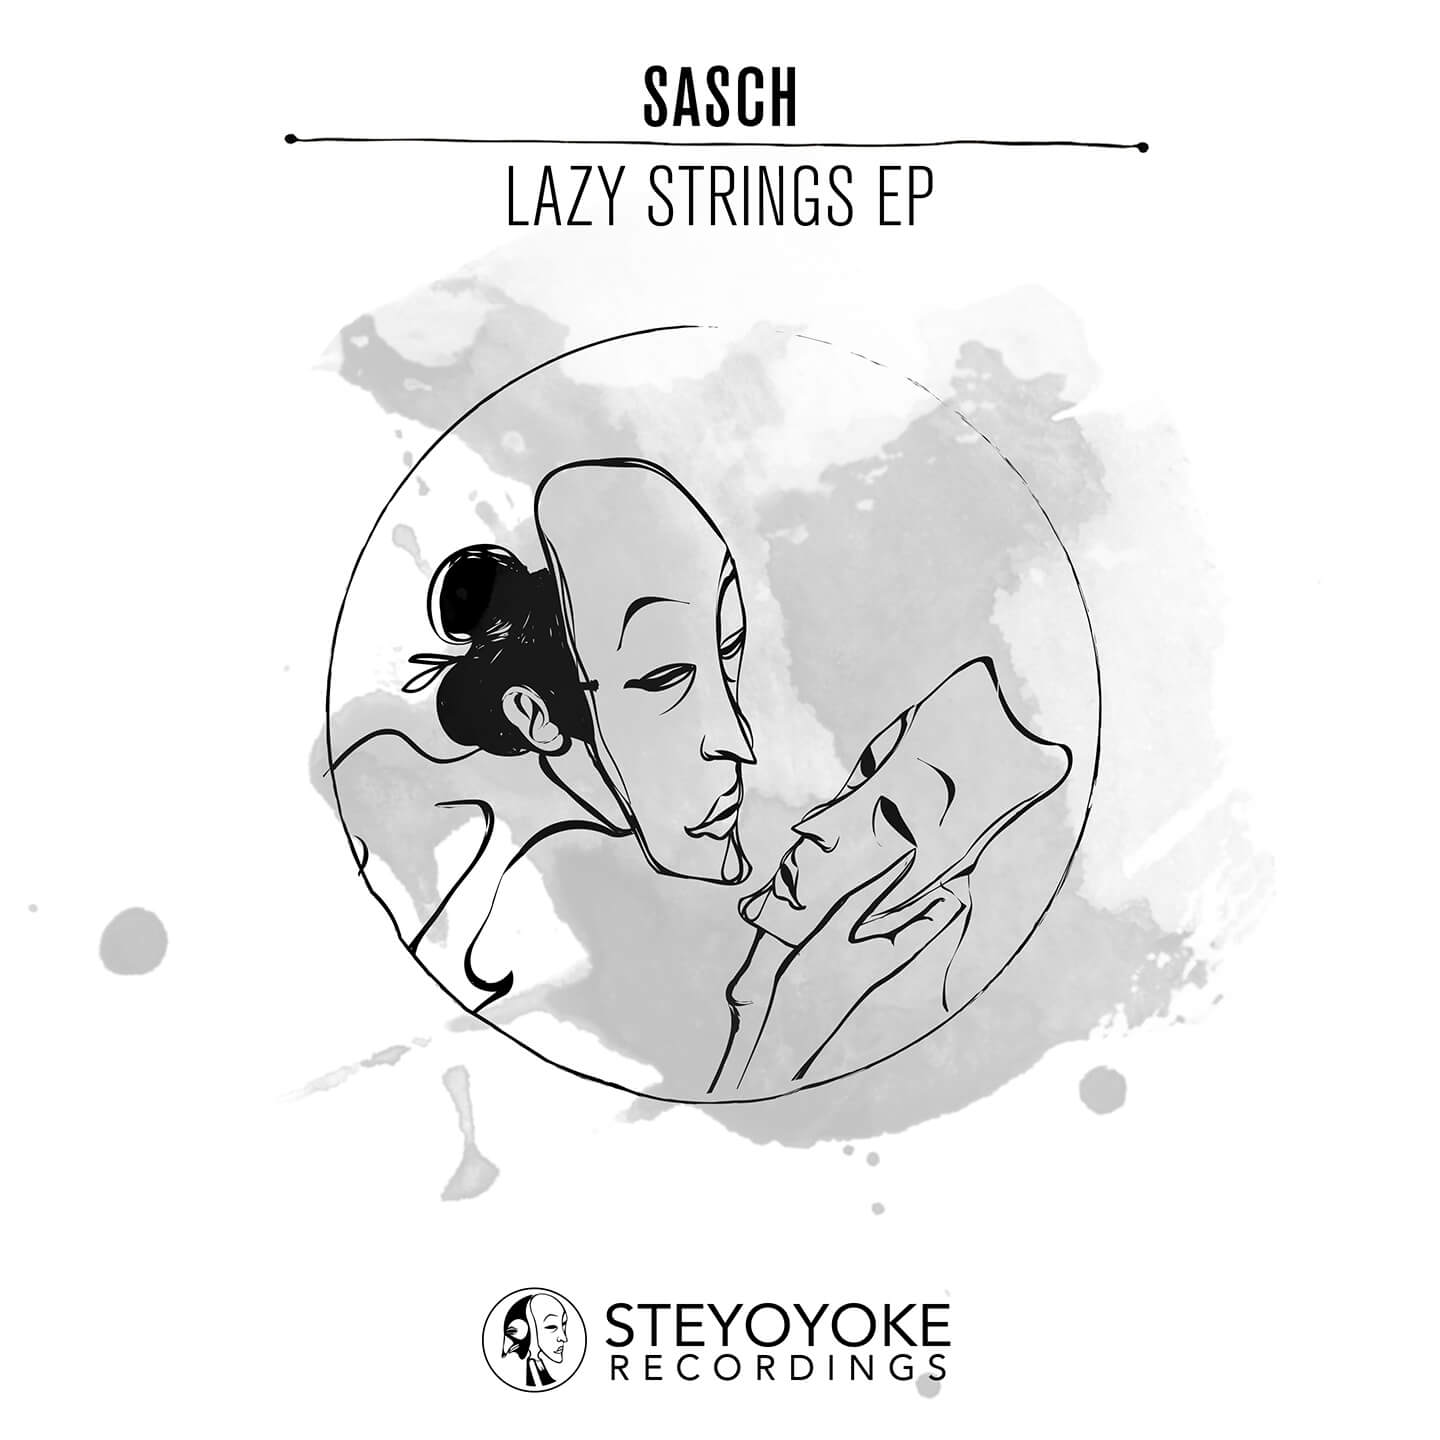 SYYK011_Steyoyoke - Sasch Lazy Strings